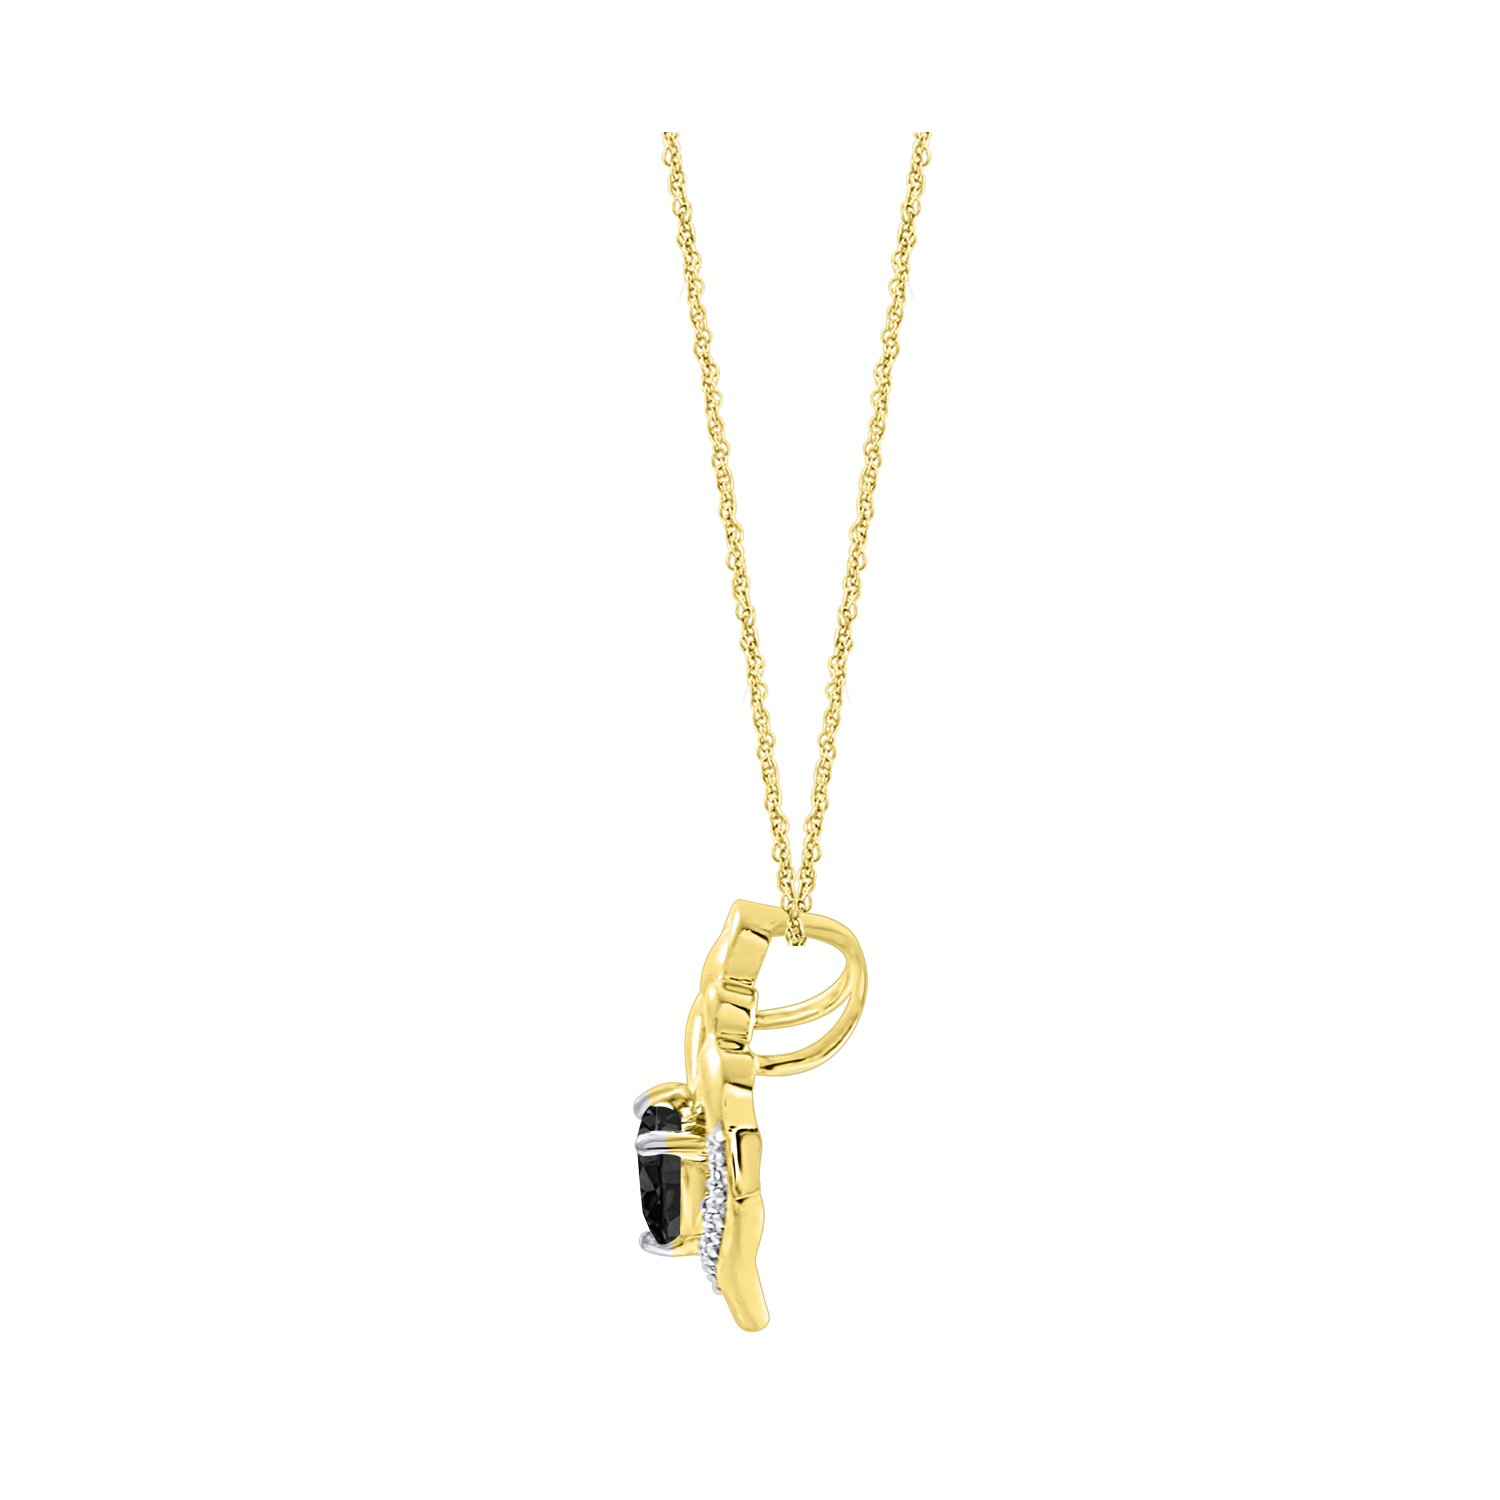 DiscountHouse4you Mother Child Black Cubic Zirconia Pendant Necklace for Mother 14k Yellow Gold Plated